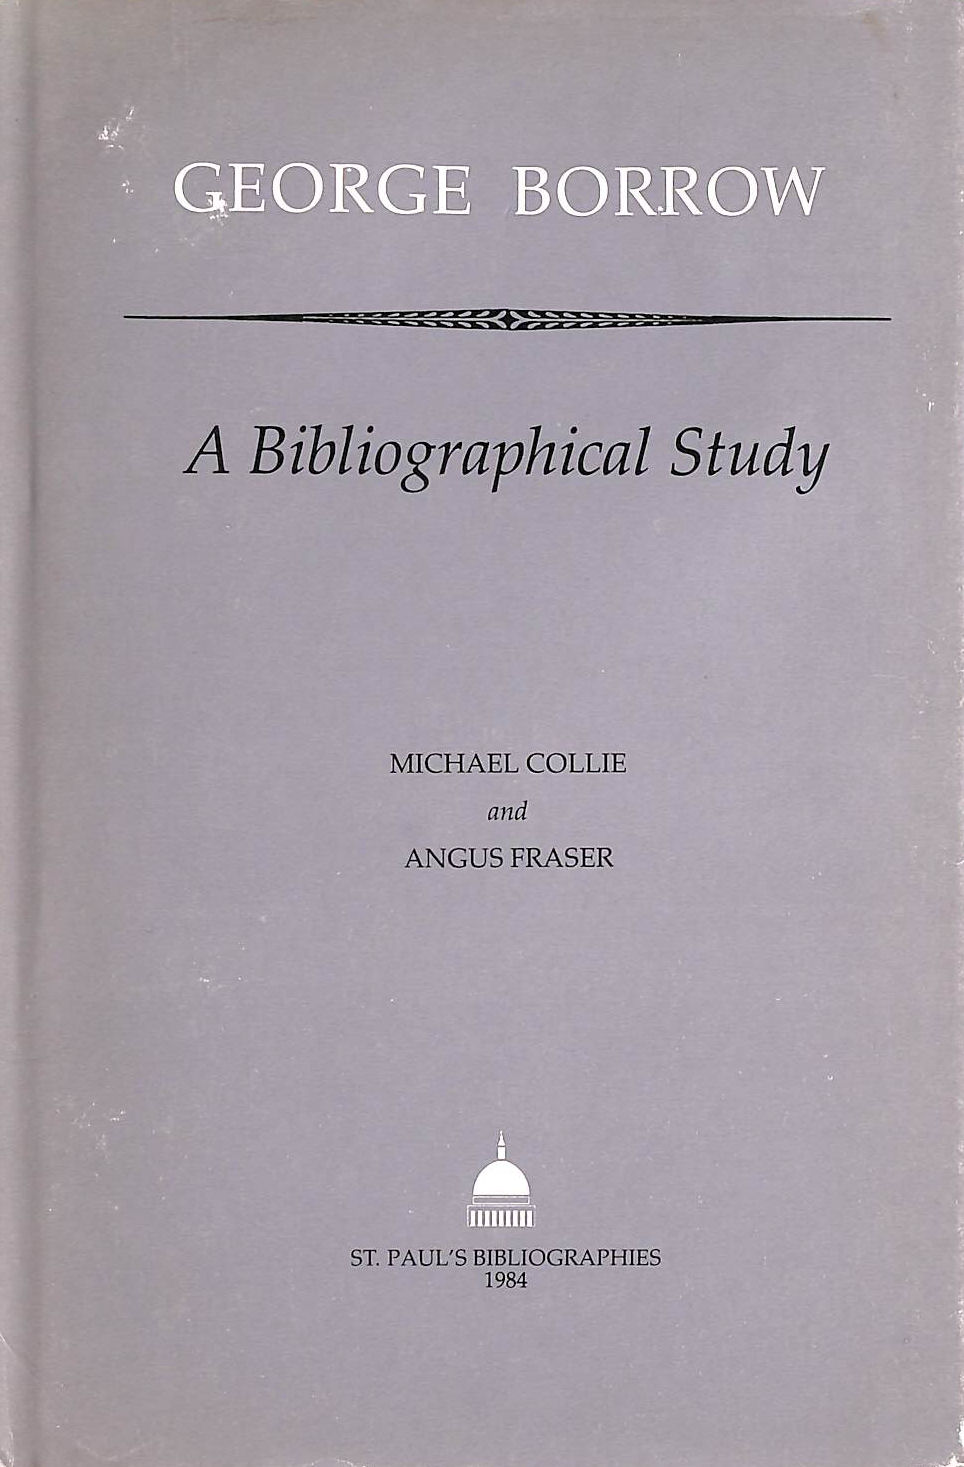 Image for George Borrow: A Bibliographical Study (St Paul's bibliographies)